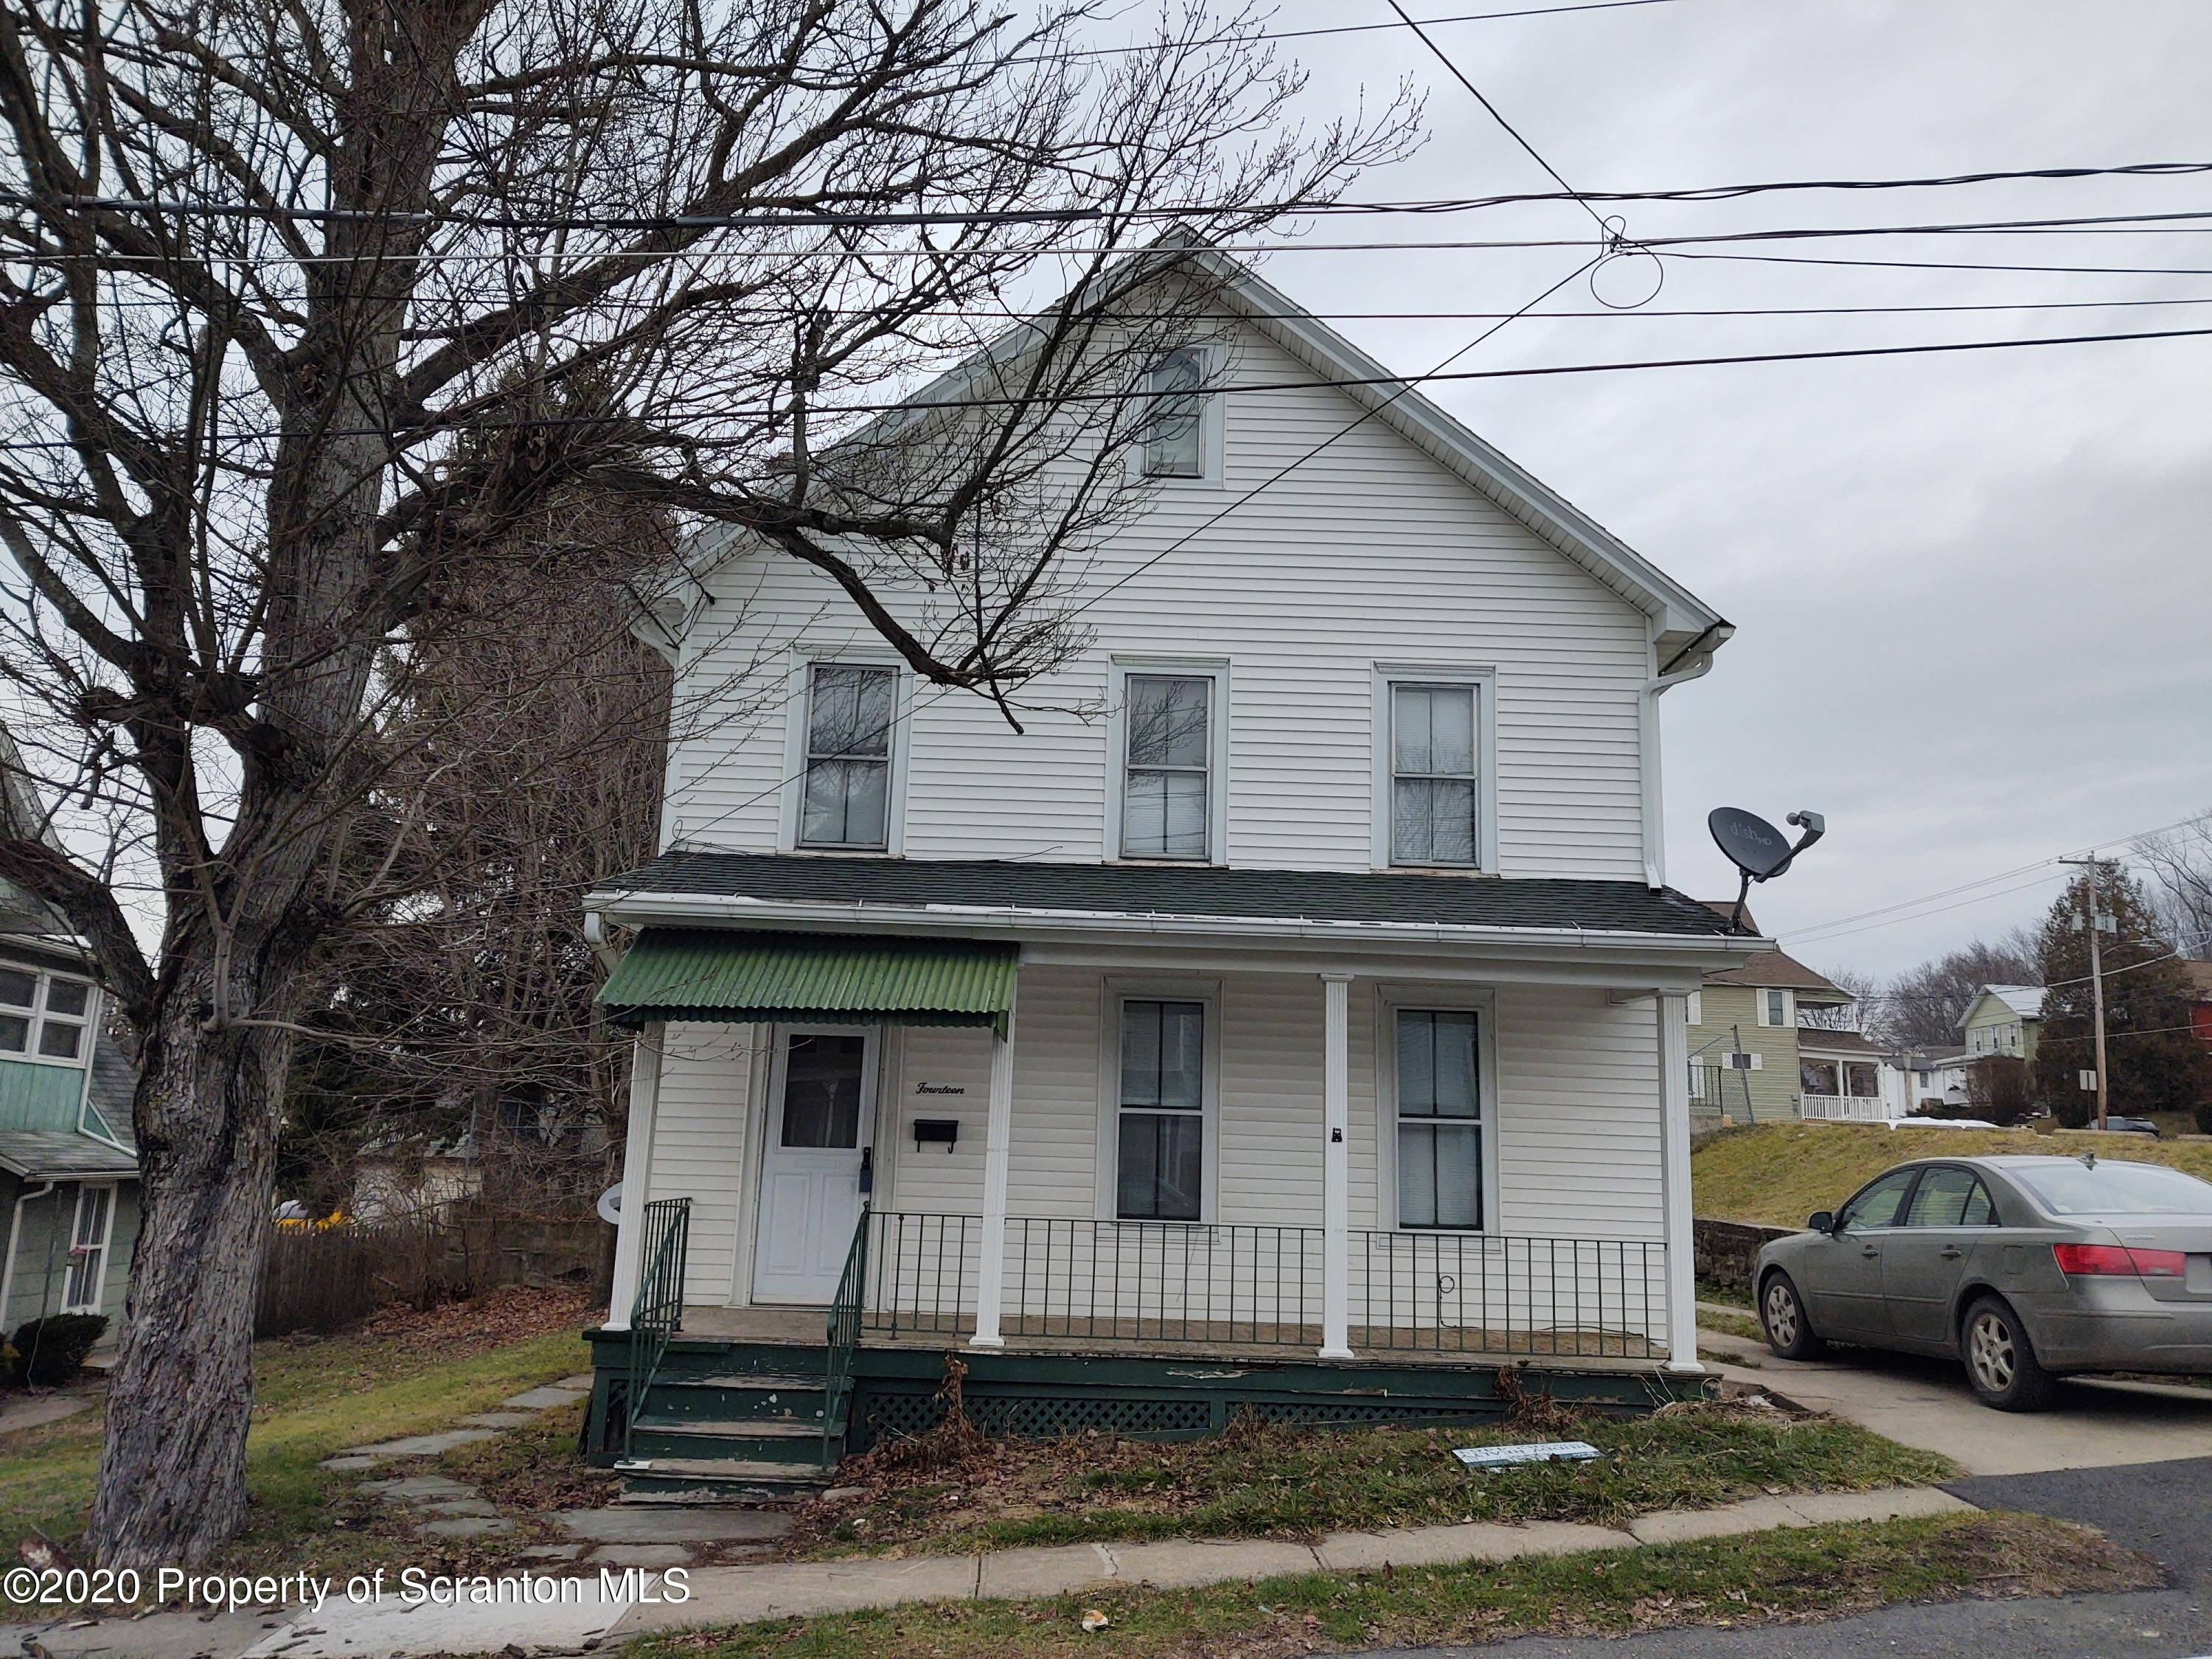 14 Maple Ave, Carbondale, Pennsylvania 18407, 3 Bedrooms Bedrooms, 7 Rooms Rooms,2 BathroomsBathrooms,Single Family,For Sale,Maple,20-5363